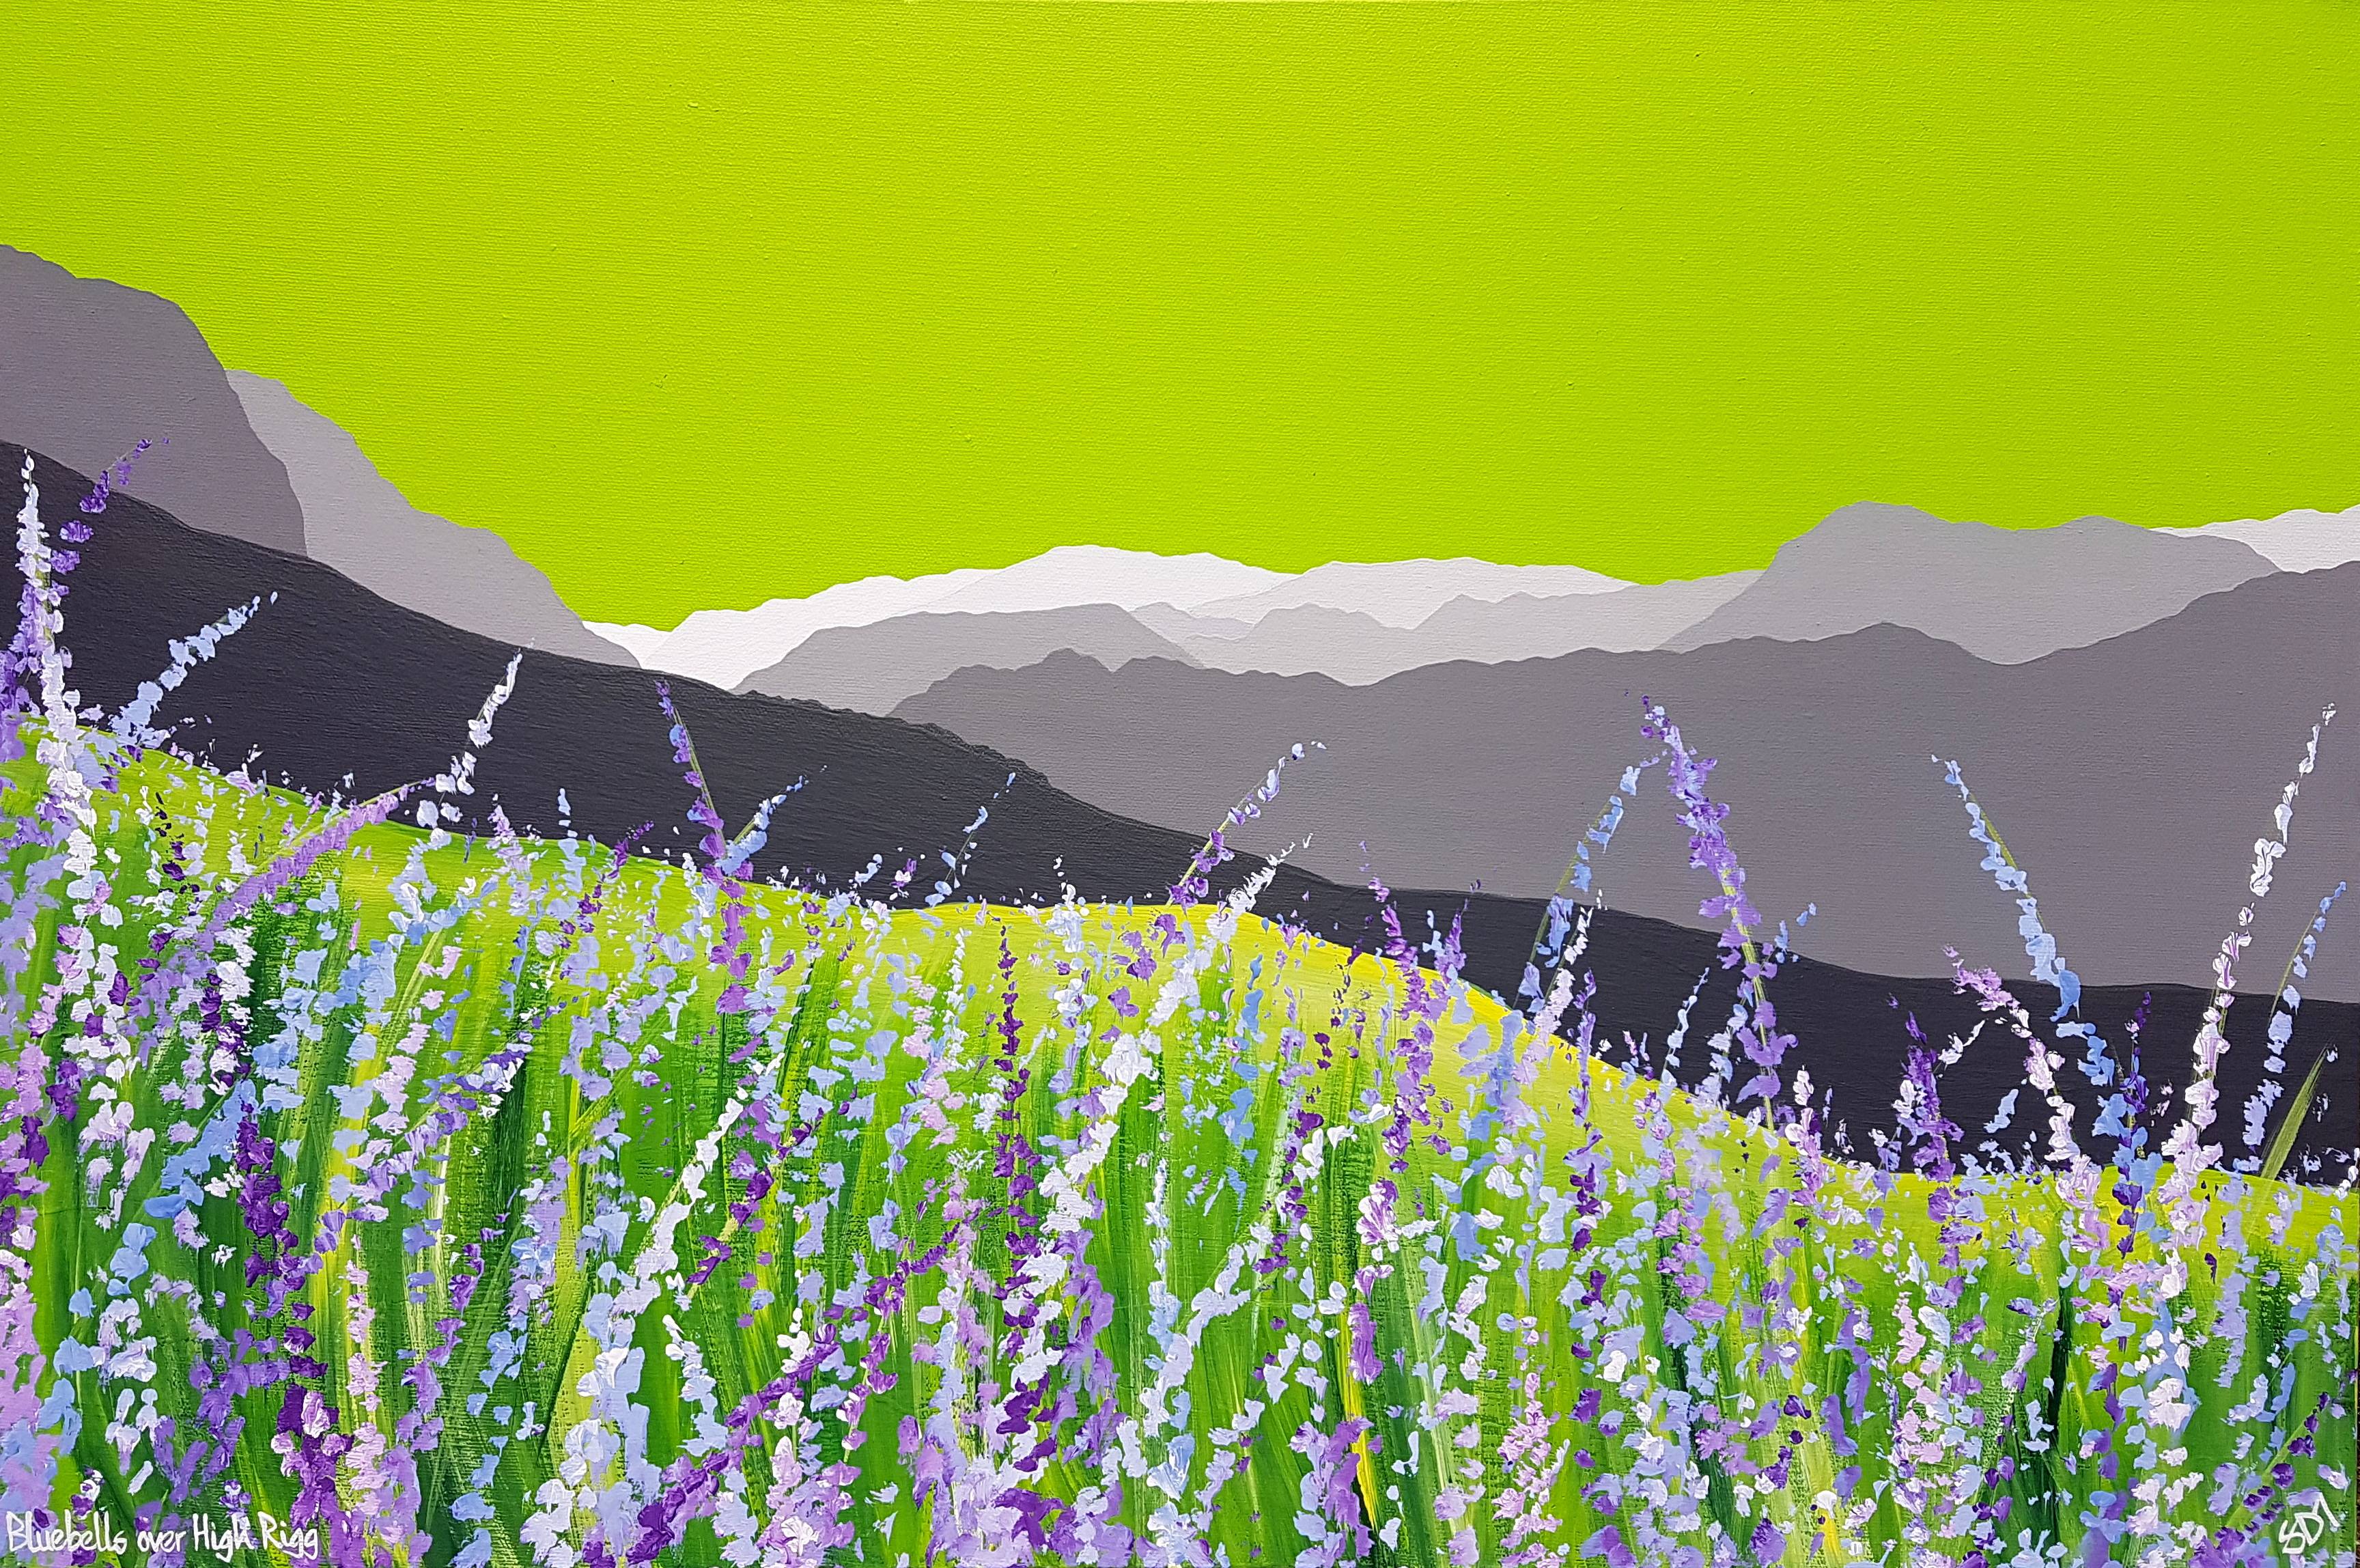 SOLD Bluebells over High Rigg